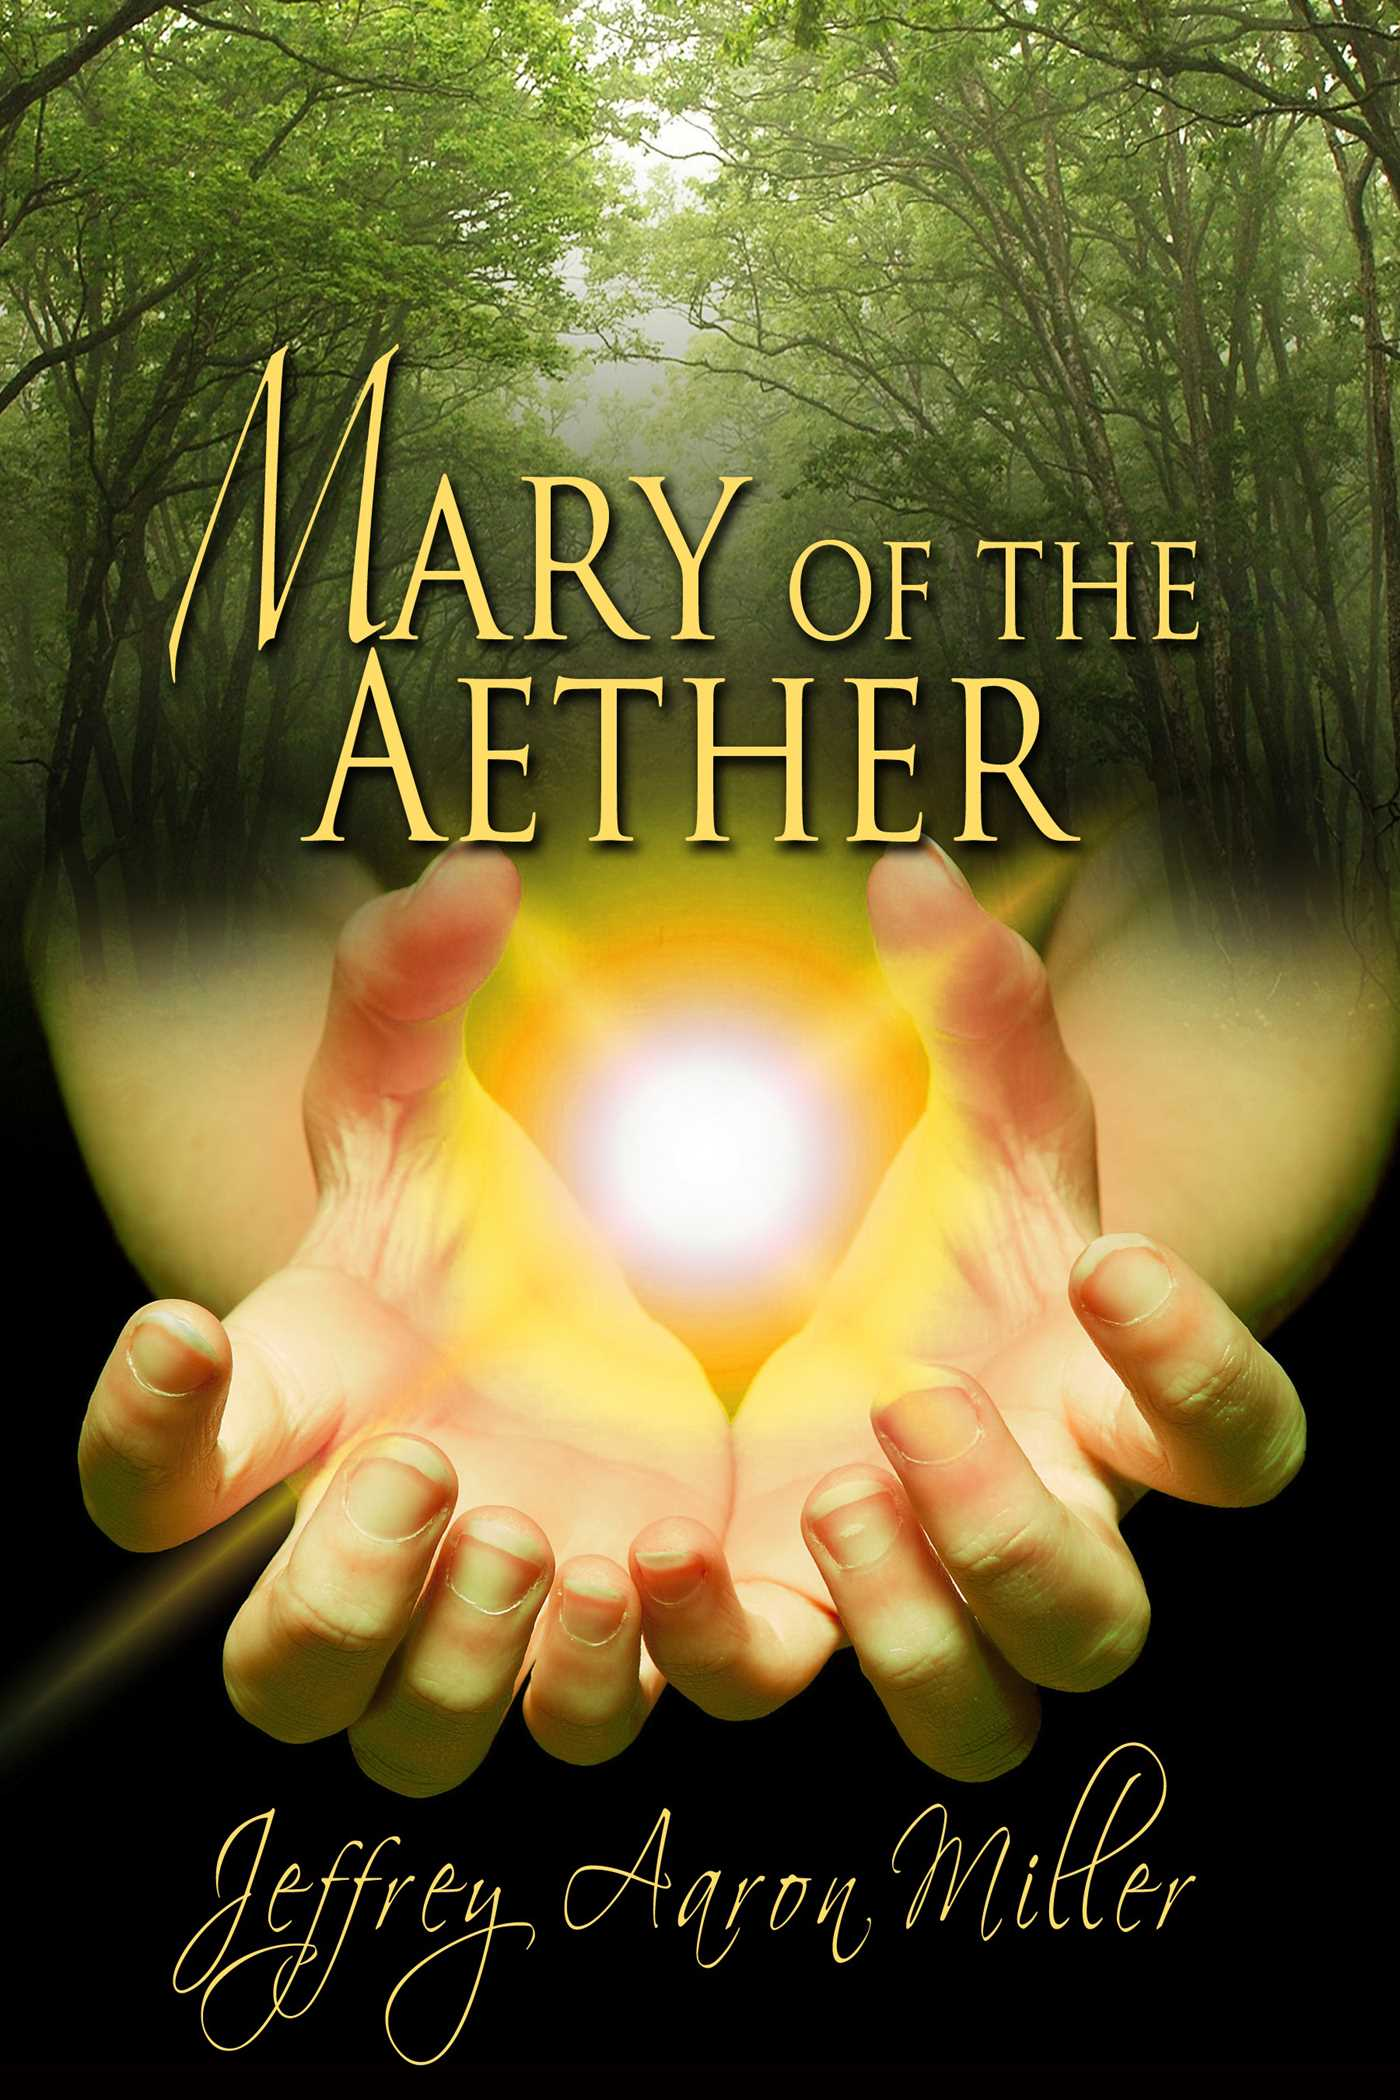 Mary of the aether 9781611602593 hr